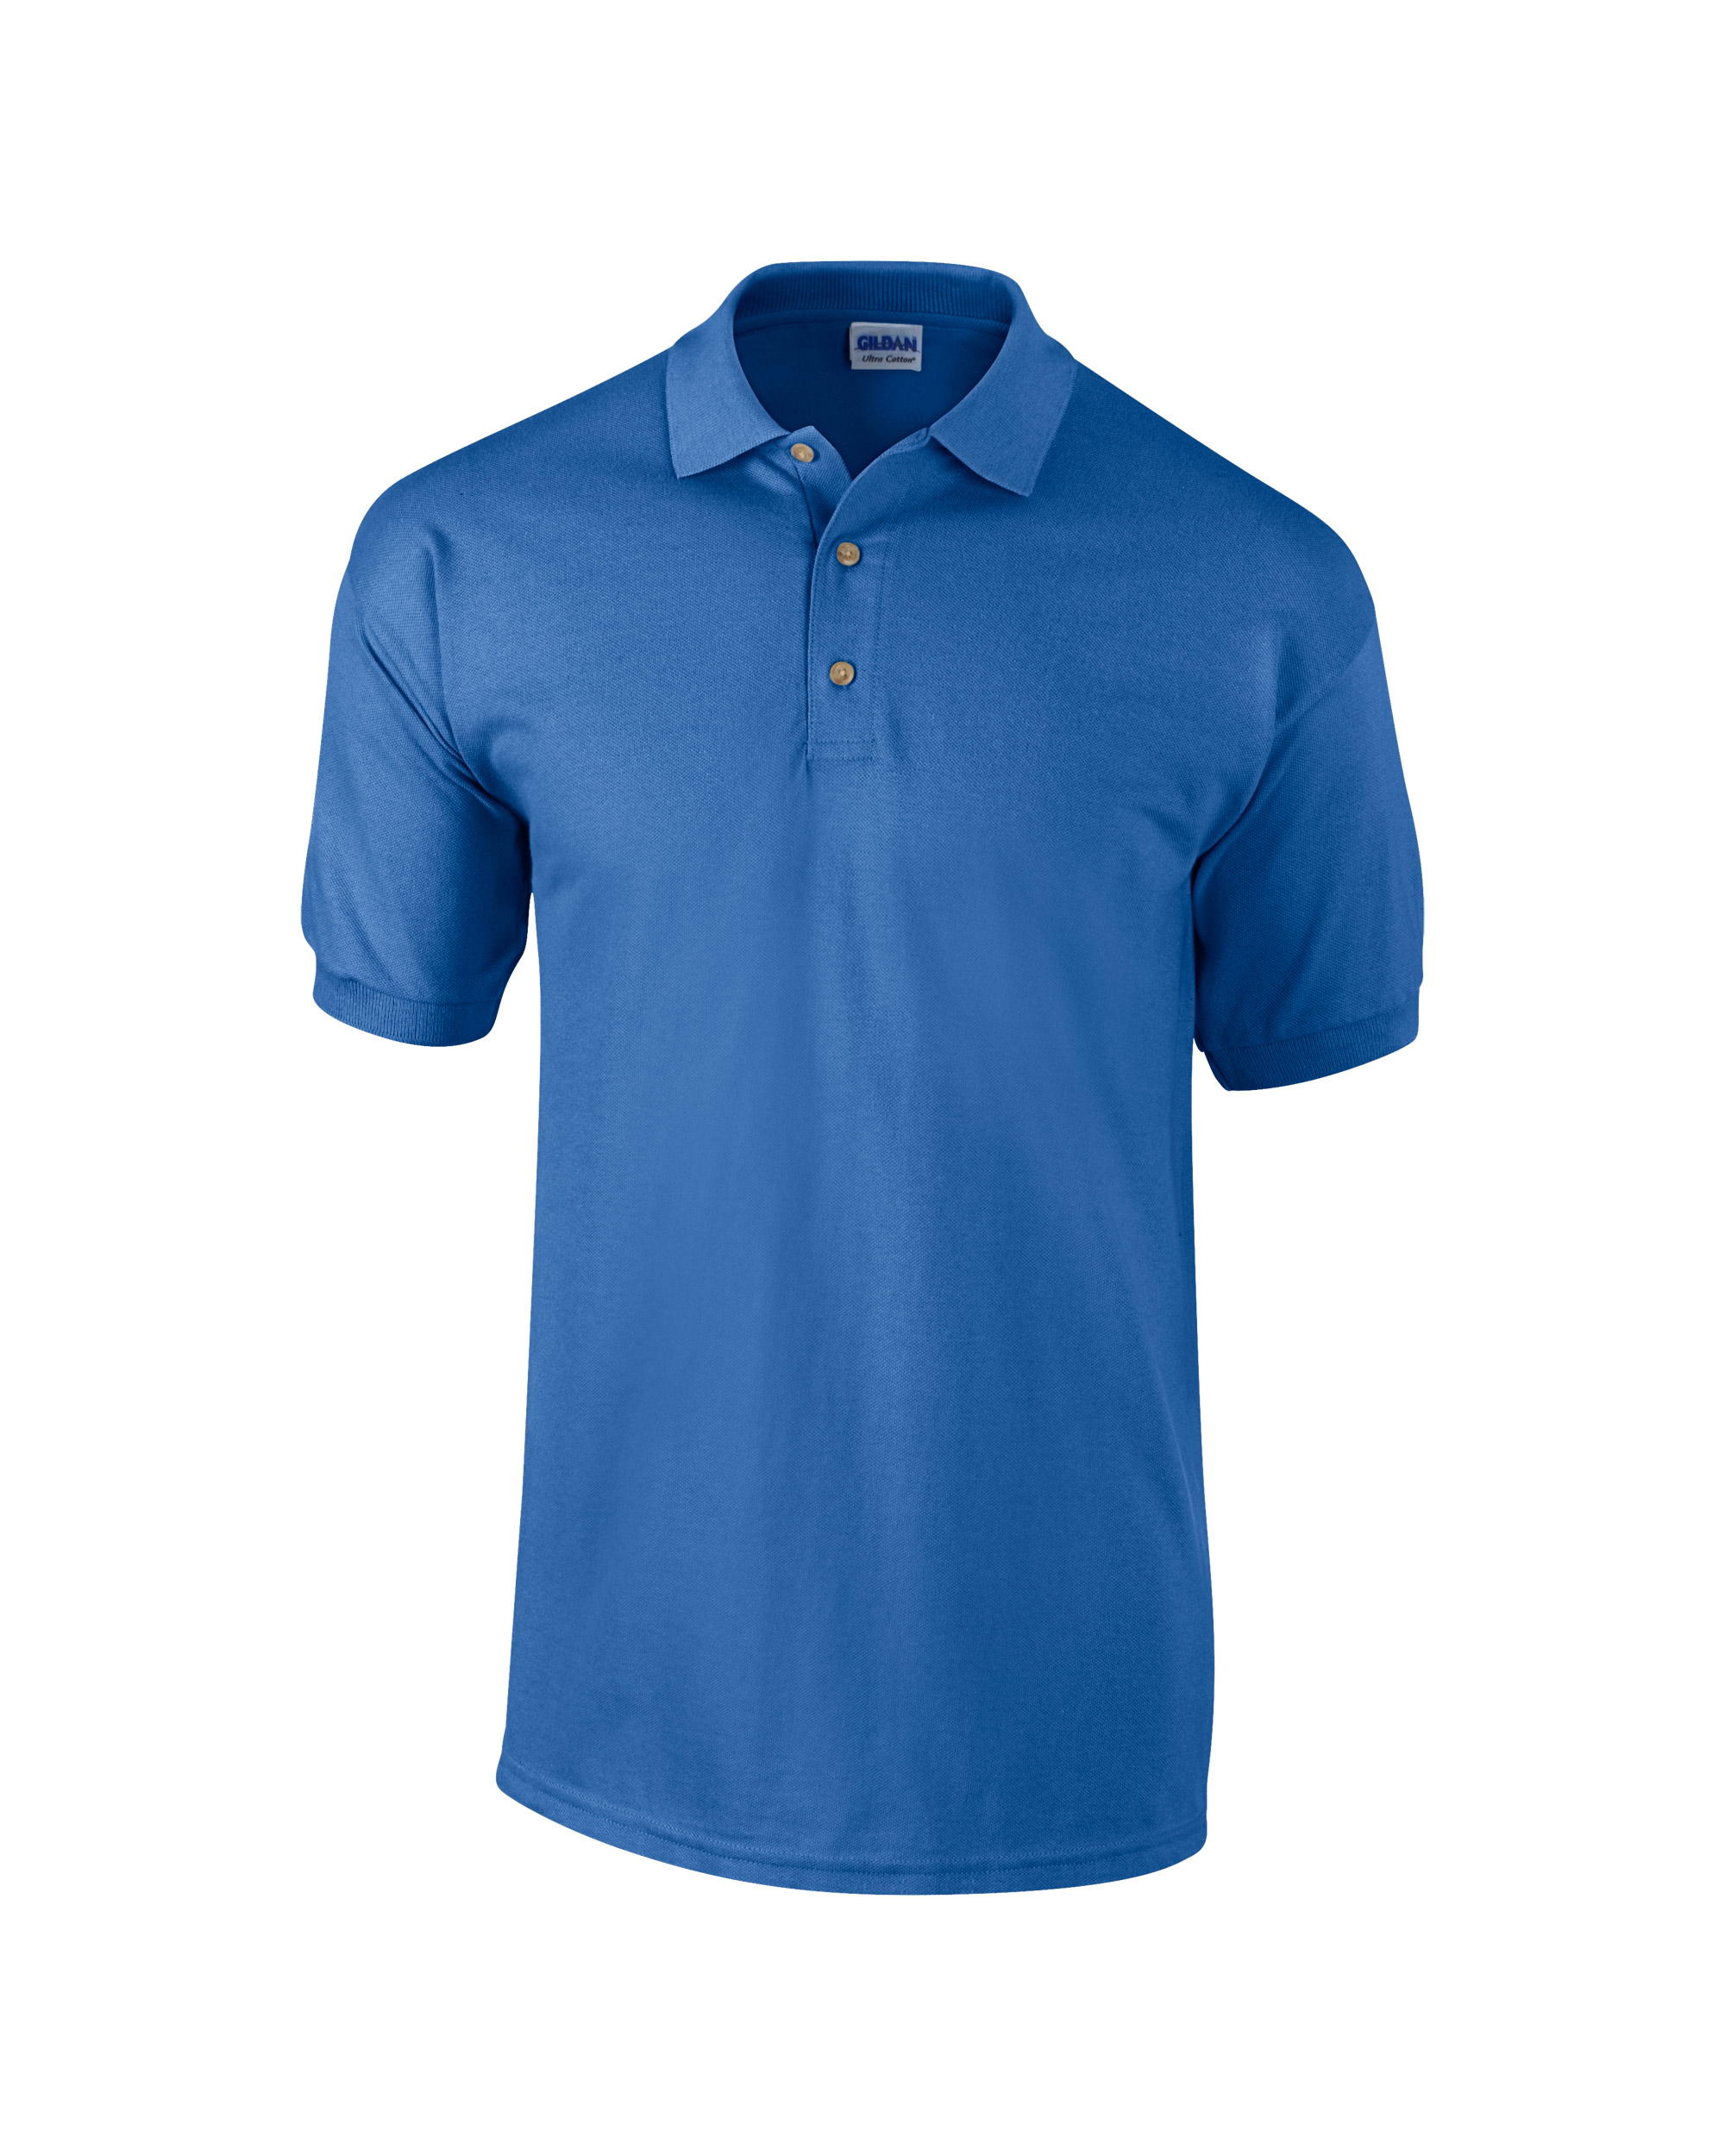 Unisex Gildan Ultra Cotton 65 Oz Piqu Polo Team Shirt Pros